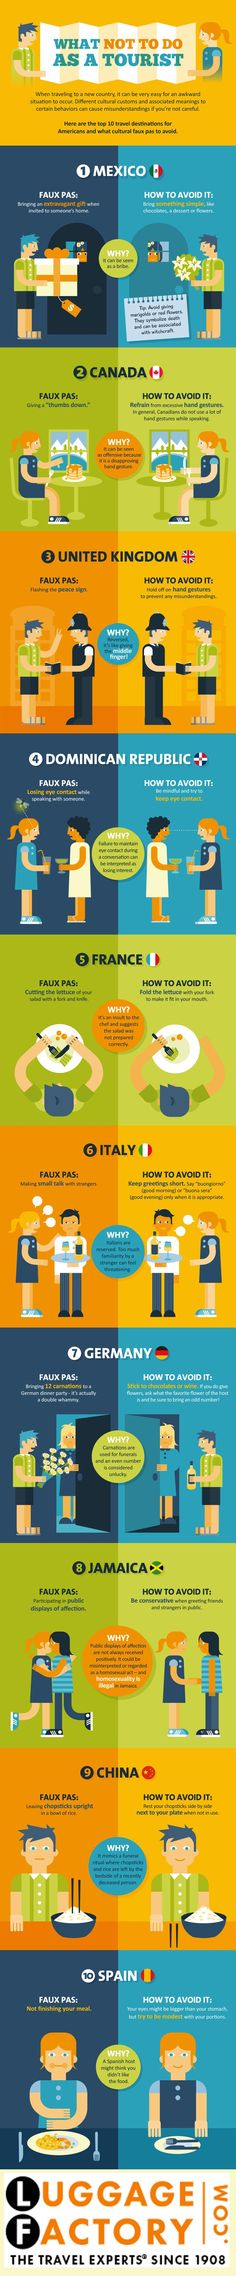 """What Not To Do As A Tourist"" Travelling to different countries often includes encountering different cultures.  This infographic could save much embarassment.  http://voyagebookers.com/travel-advice-infographic/"